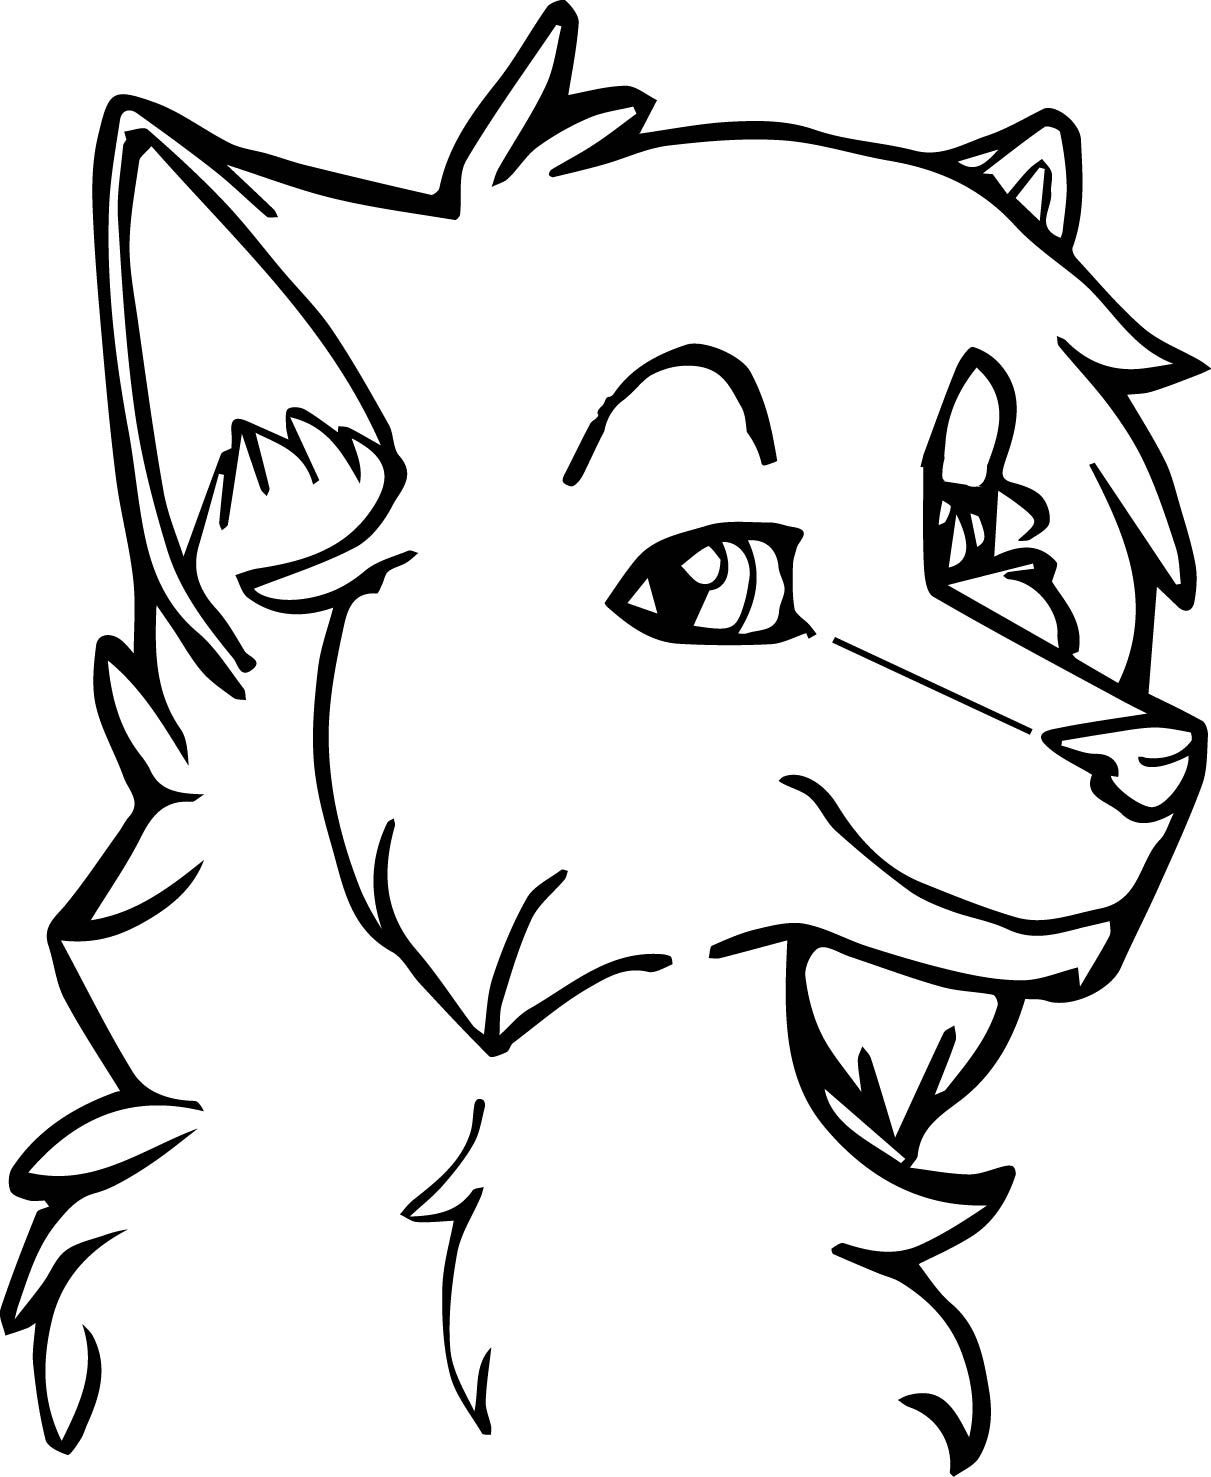 Tribal Wolf Coloring Pages at GetColorings.com | Free ...